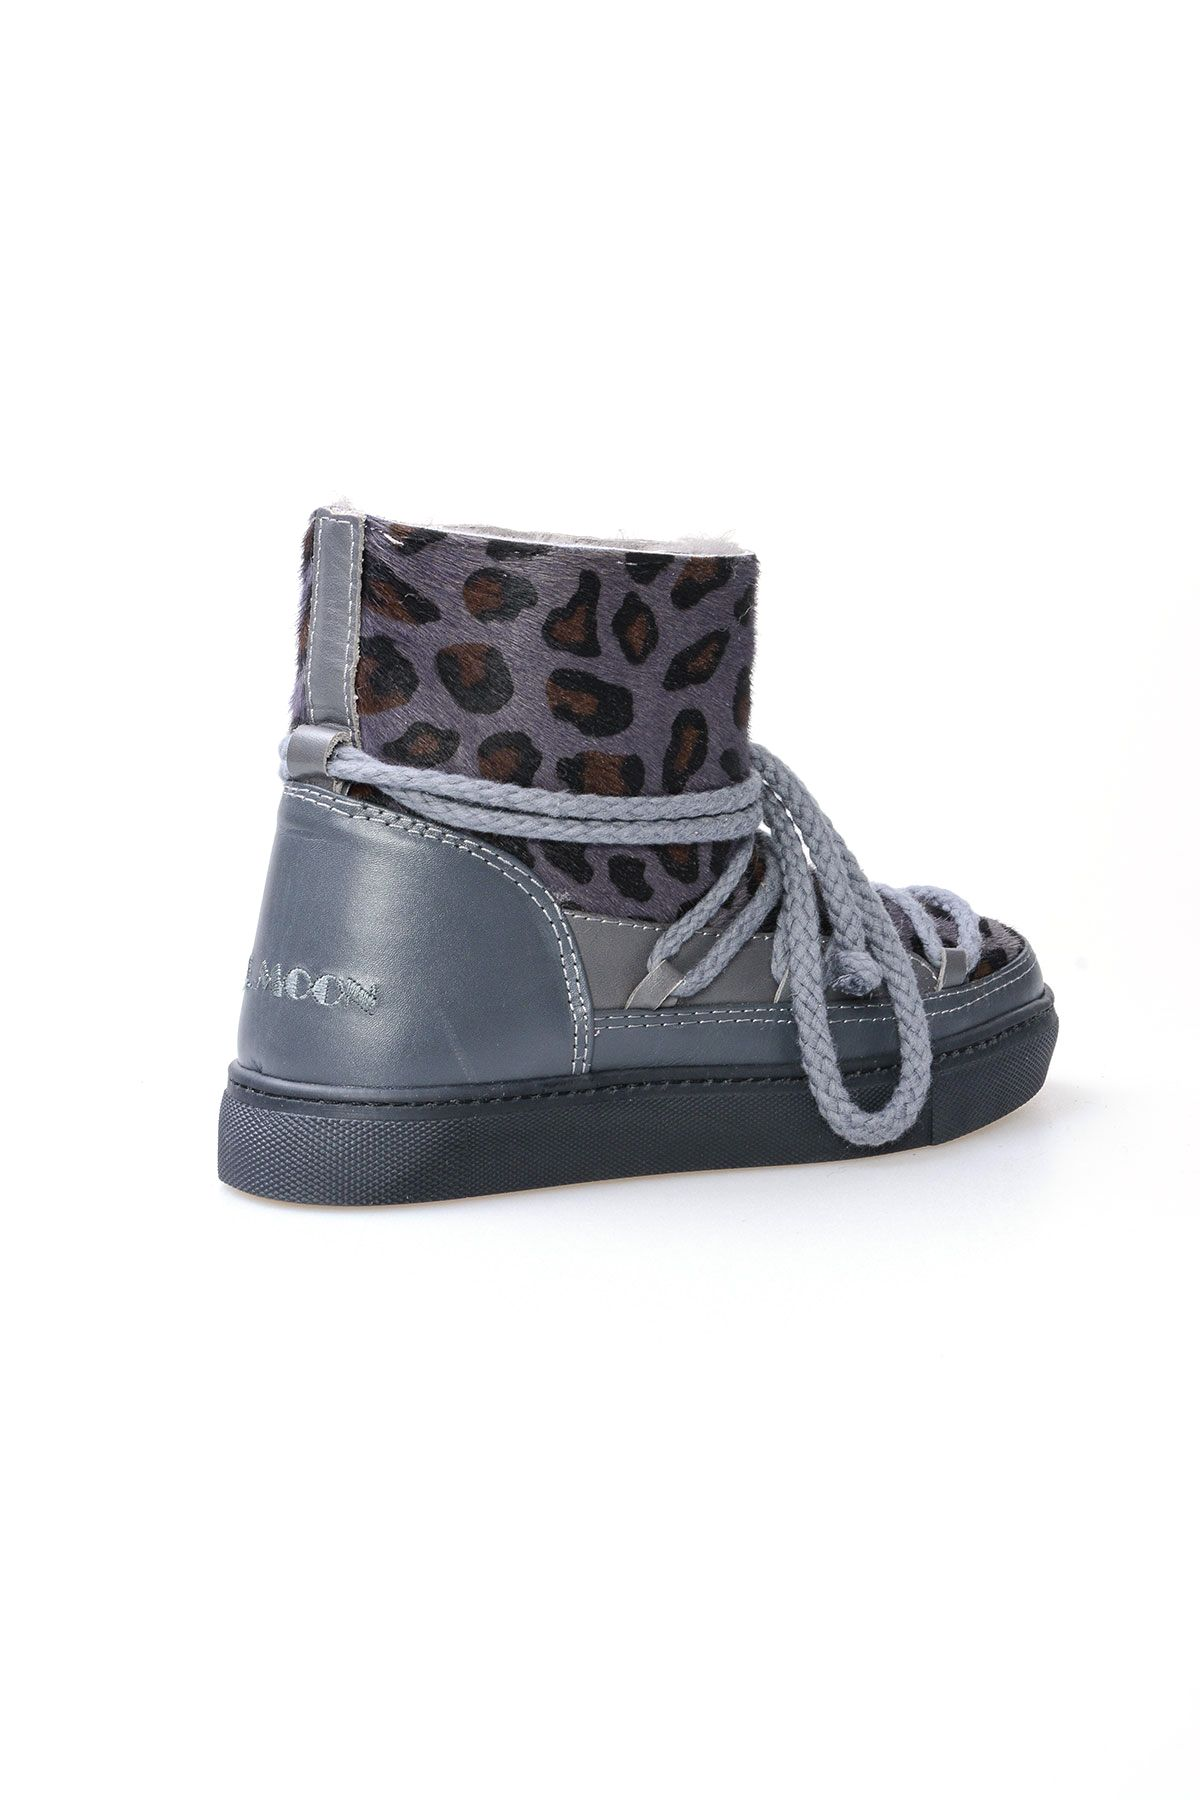 Cool Moon Genuine Cavallino Leather & Shearling Women's Sneakers 355002 Gray